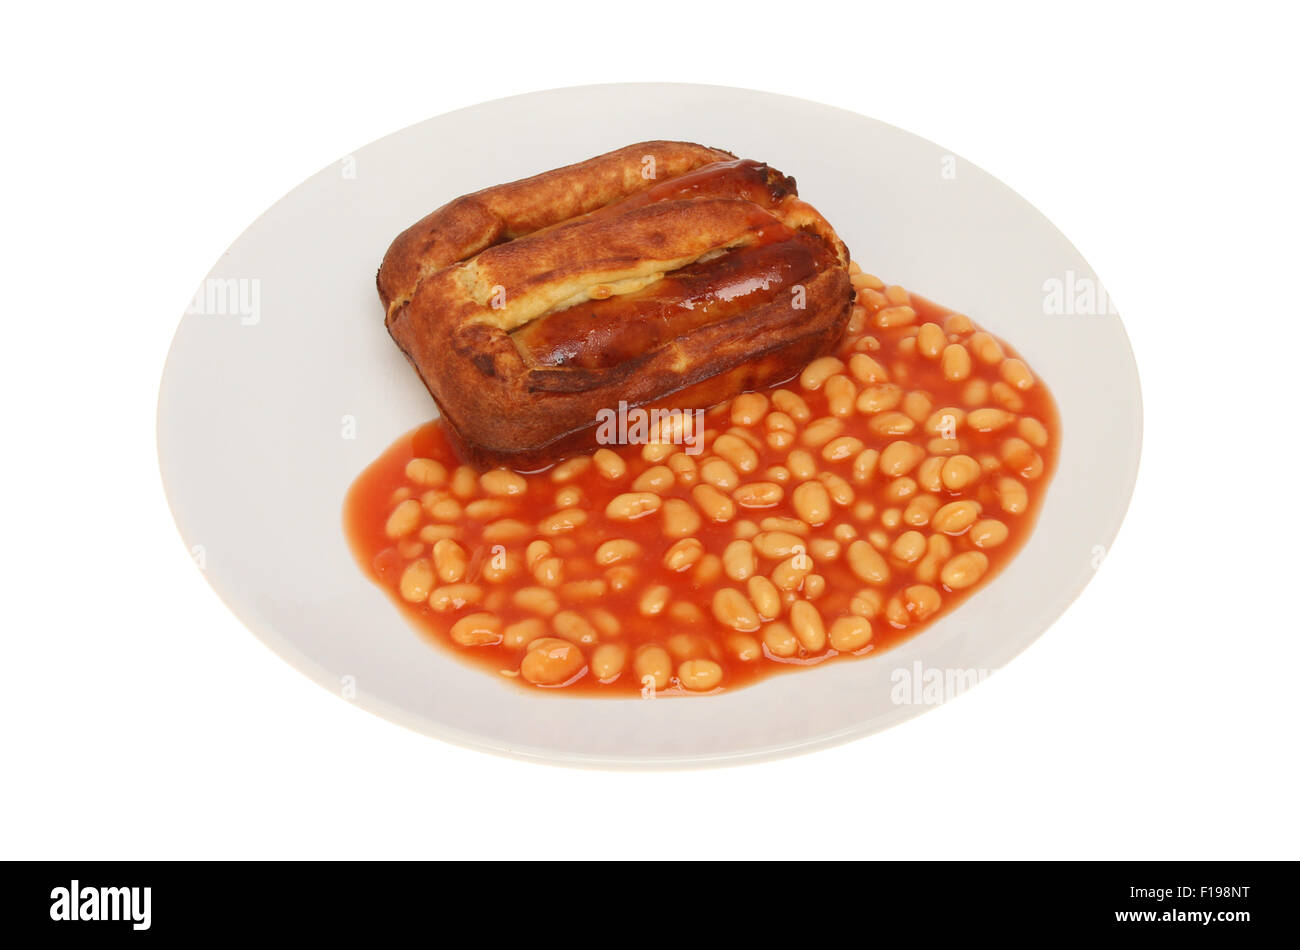 Toad in the hole, sausages baked in batter, with baked beans on a plate isolated against white - Stock Image